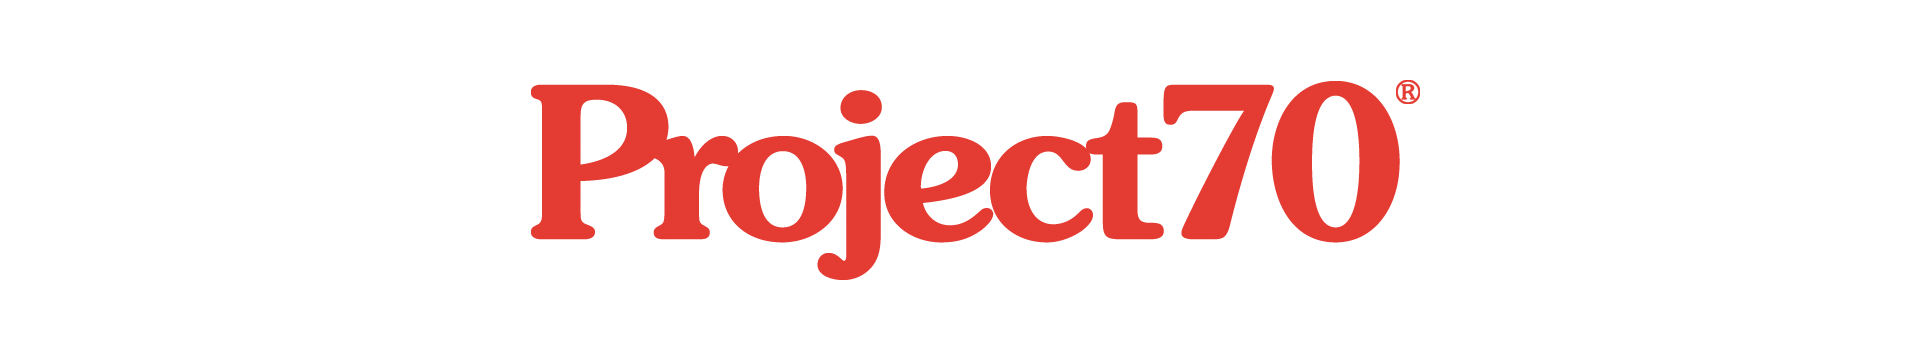 topps project 70